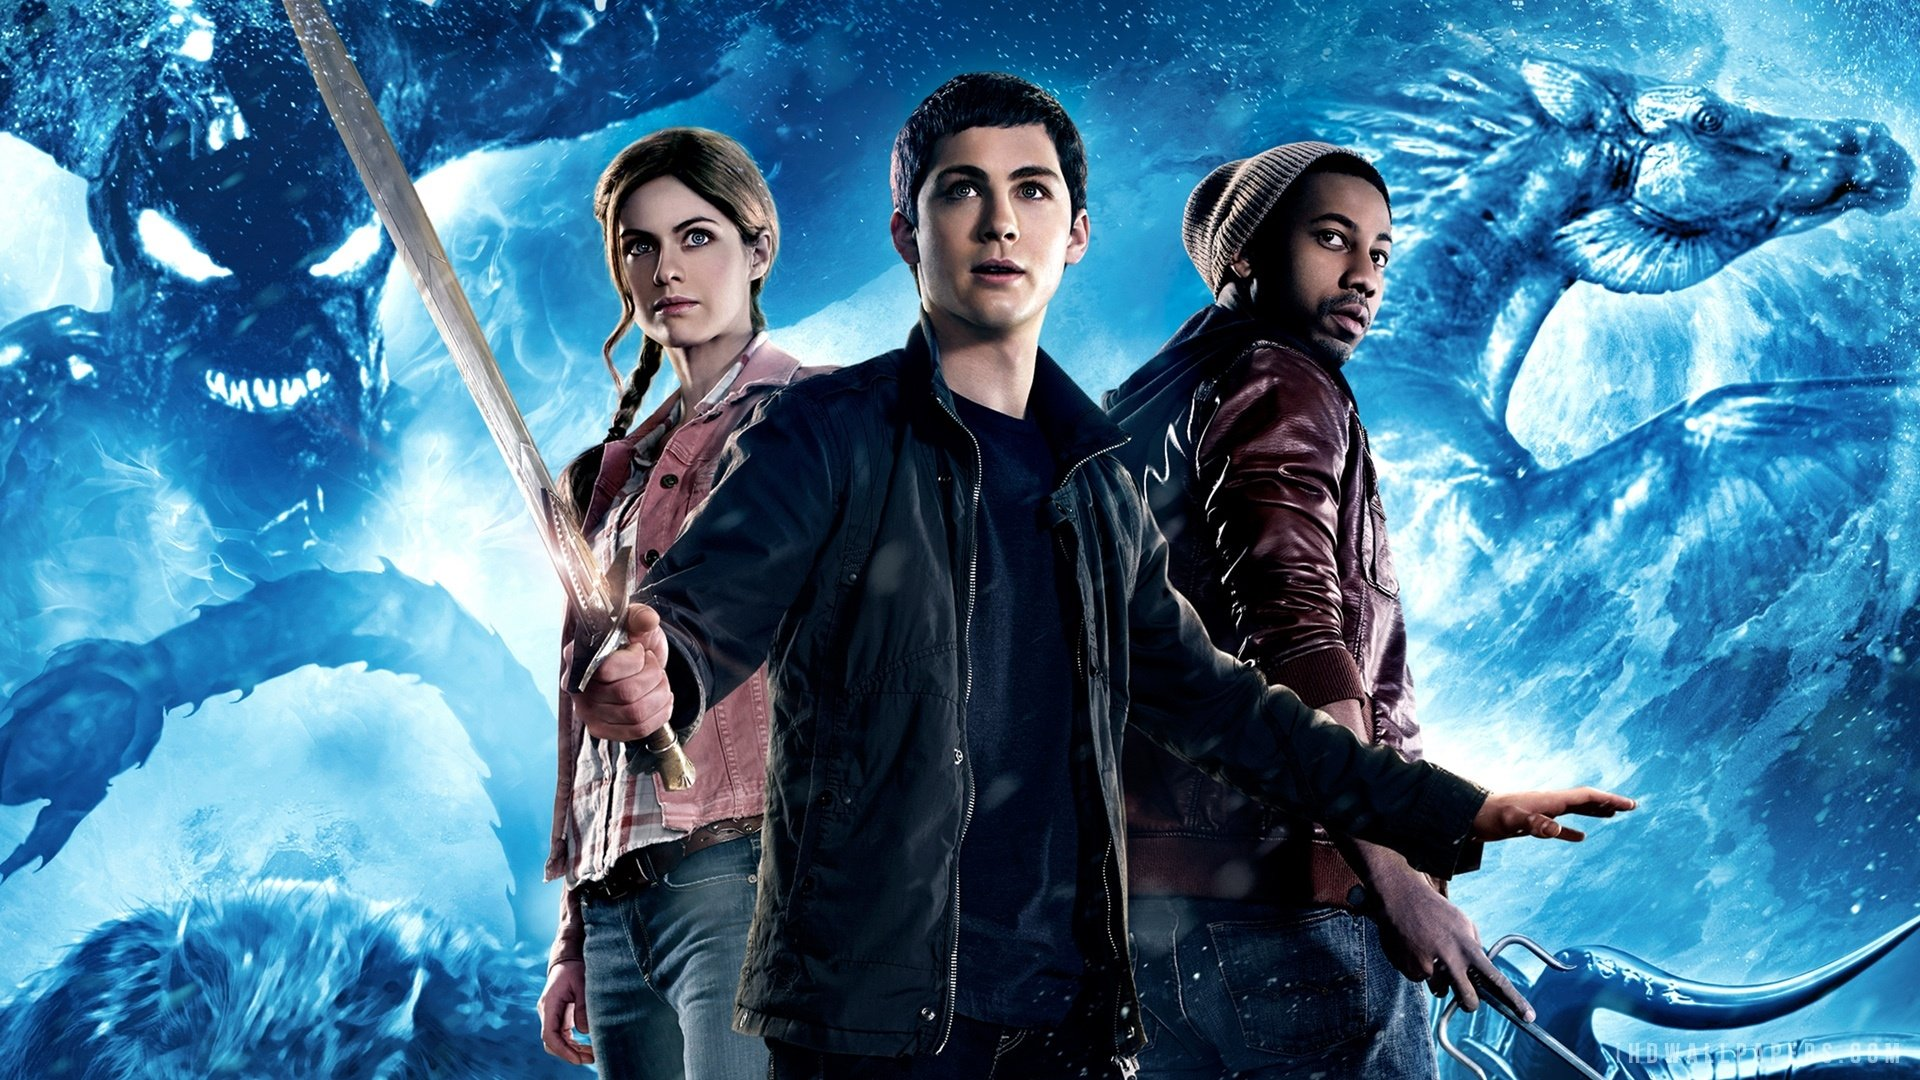 8 percy jackson sea of monsters hd wallpapers background images hd wallpaper background image id809668 voltagebd Image collections